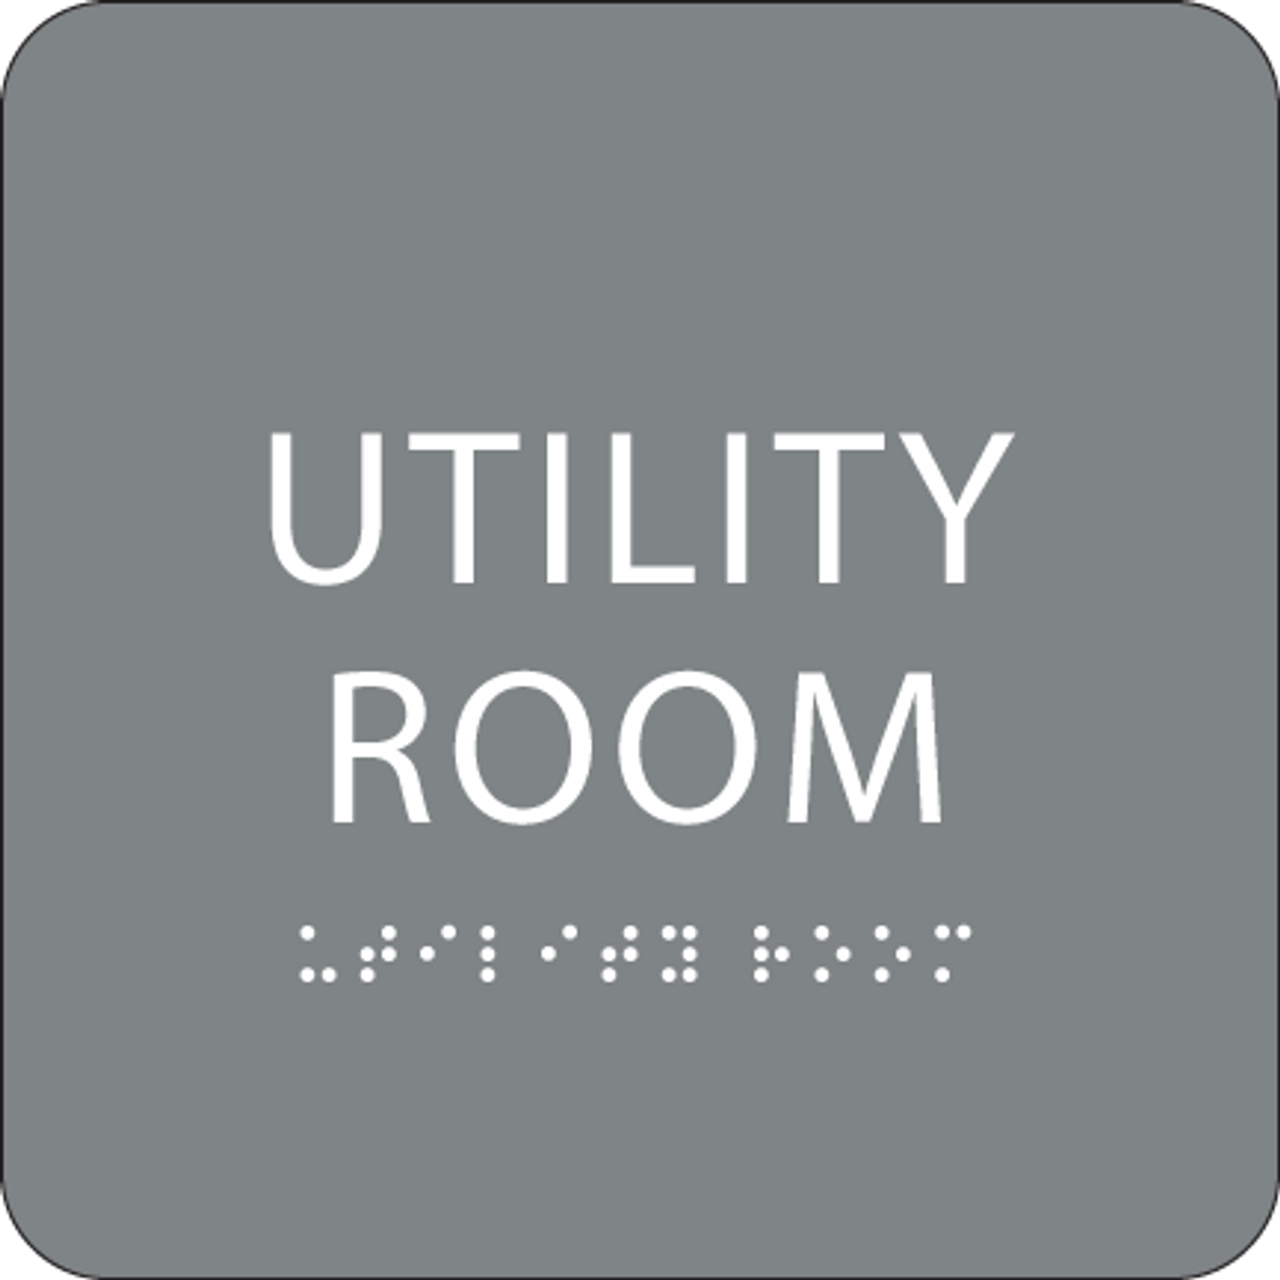 Grey Utility Room ADA Sign